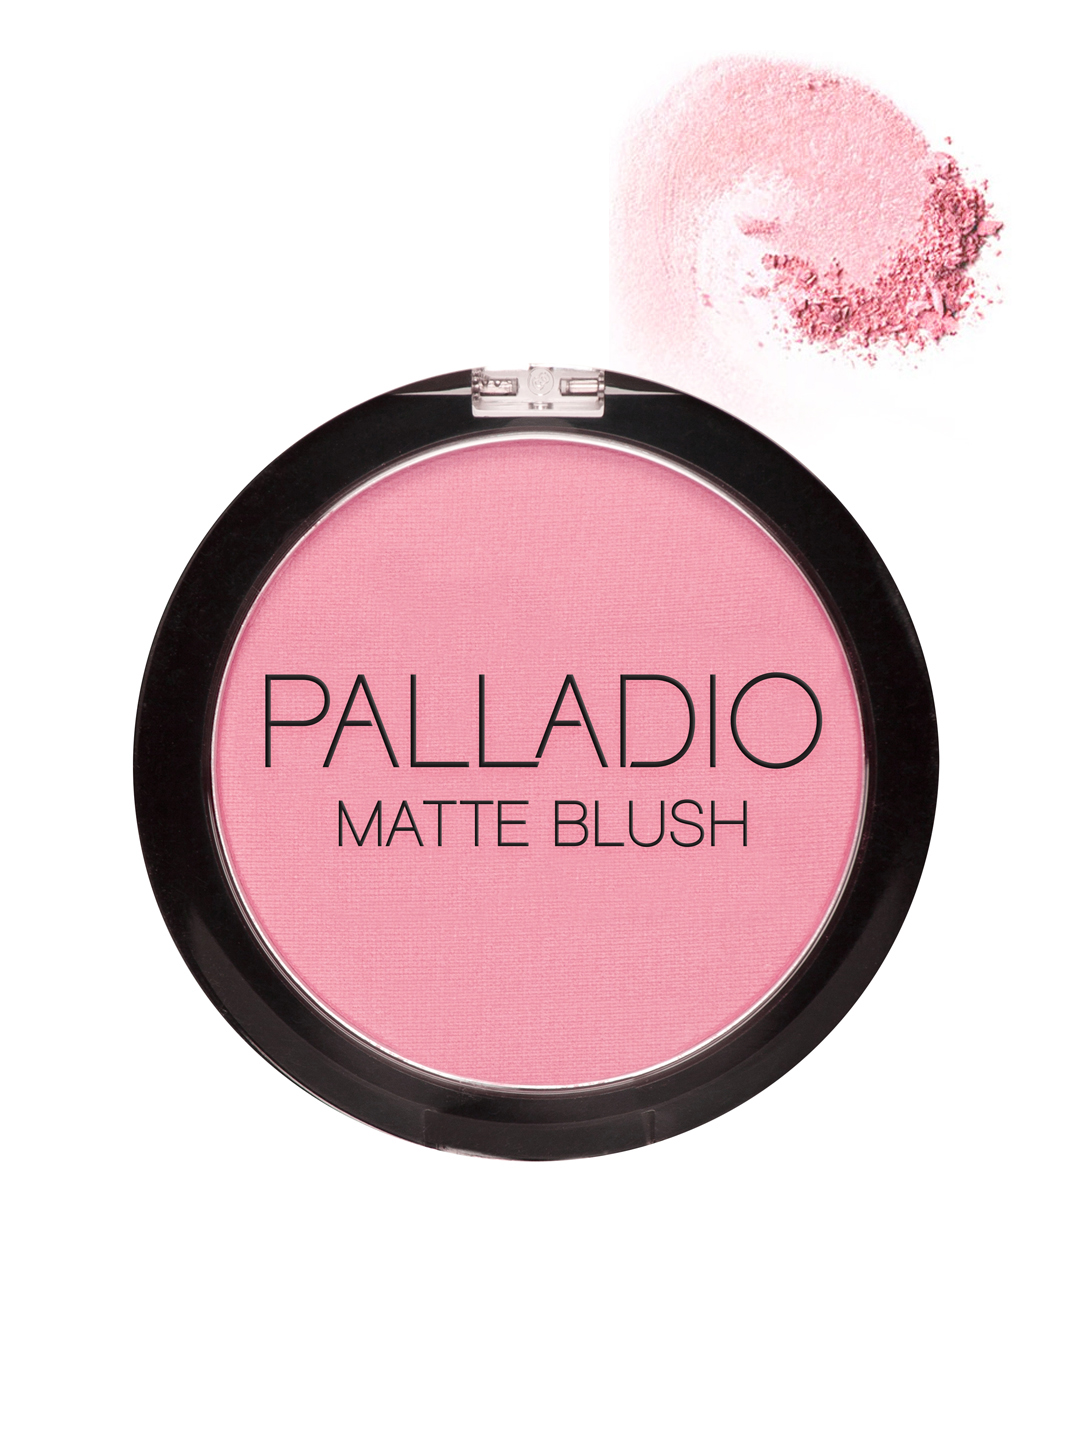 PALLADIO Berry Pink Matte Blush Price in India